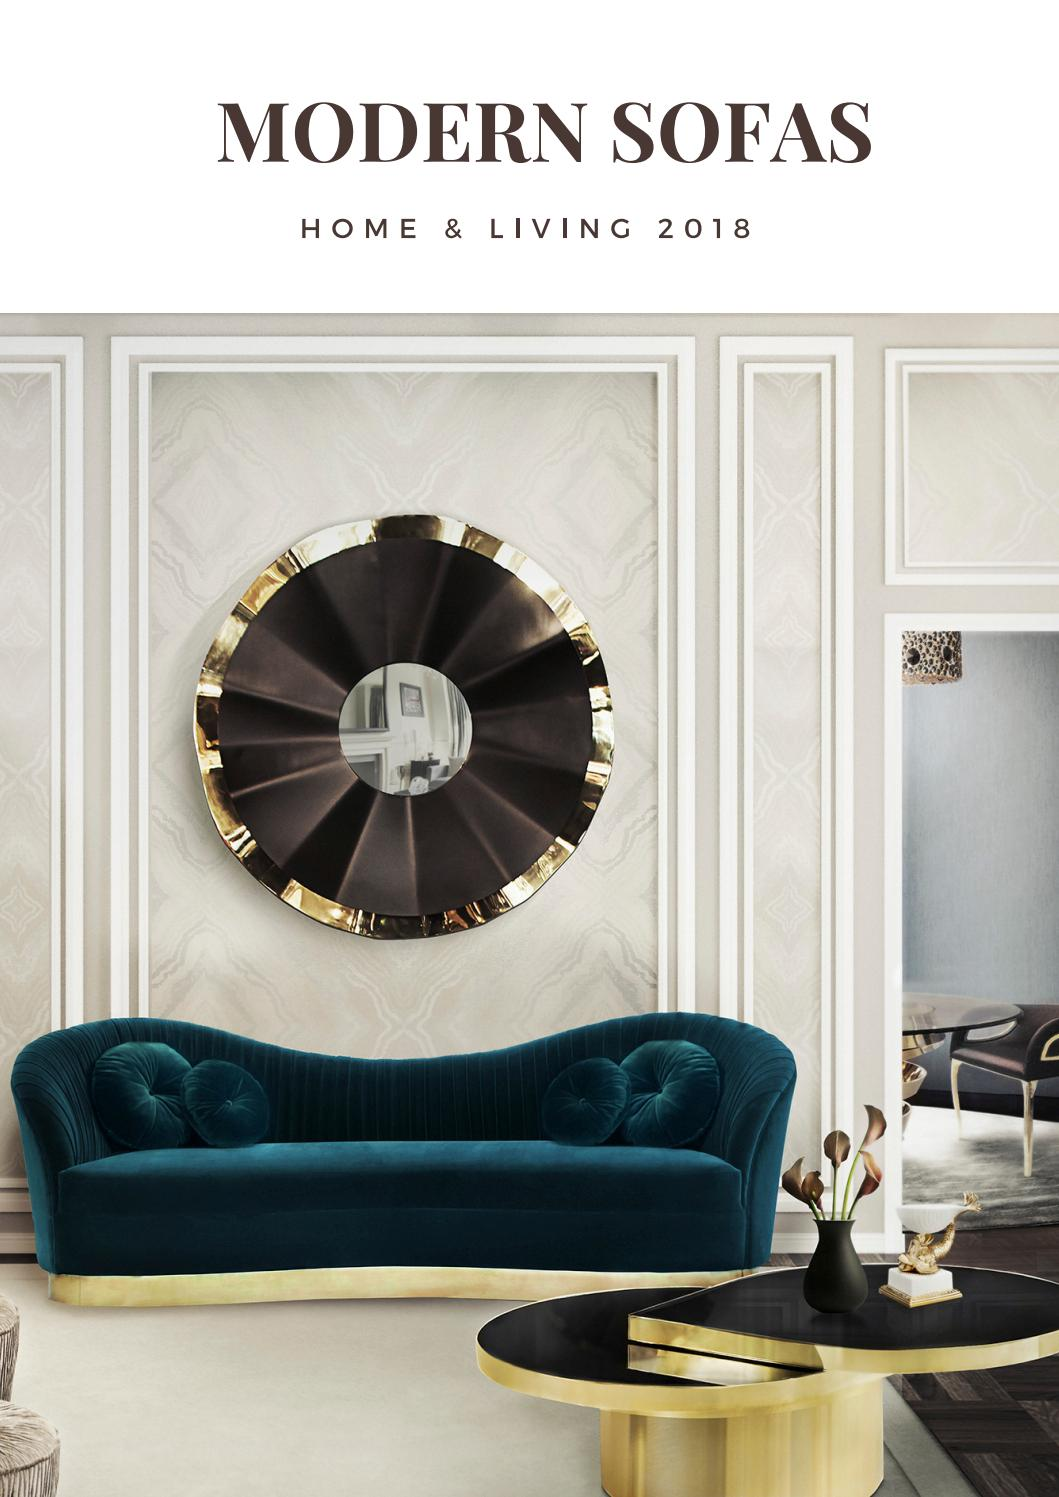 Modern Sofas Decor Home Ideas Interior Design Trends 2018 Luxury Brands Millions Of Inspirations By Insplosion Issuu